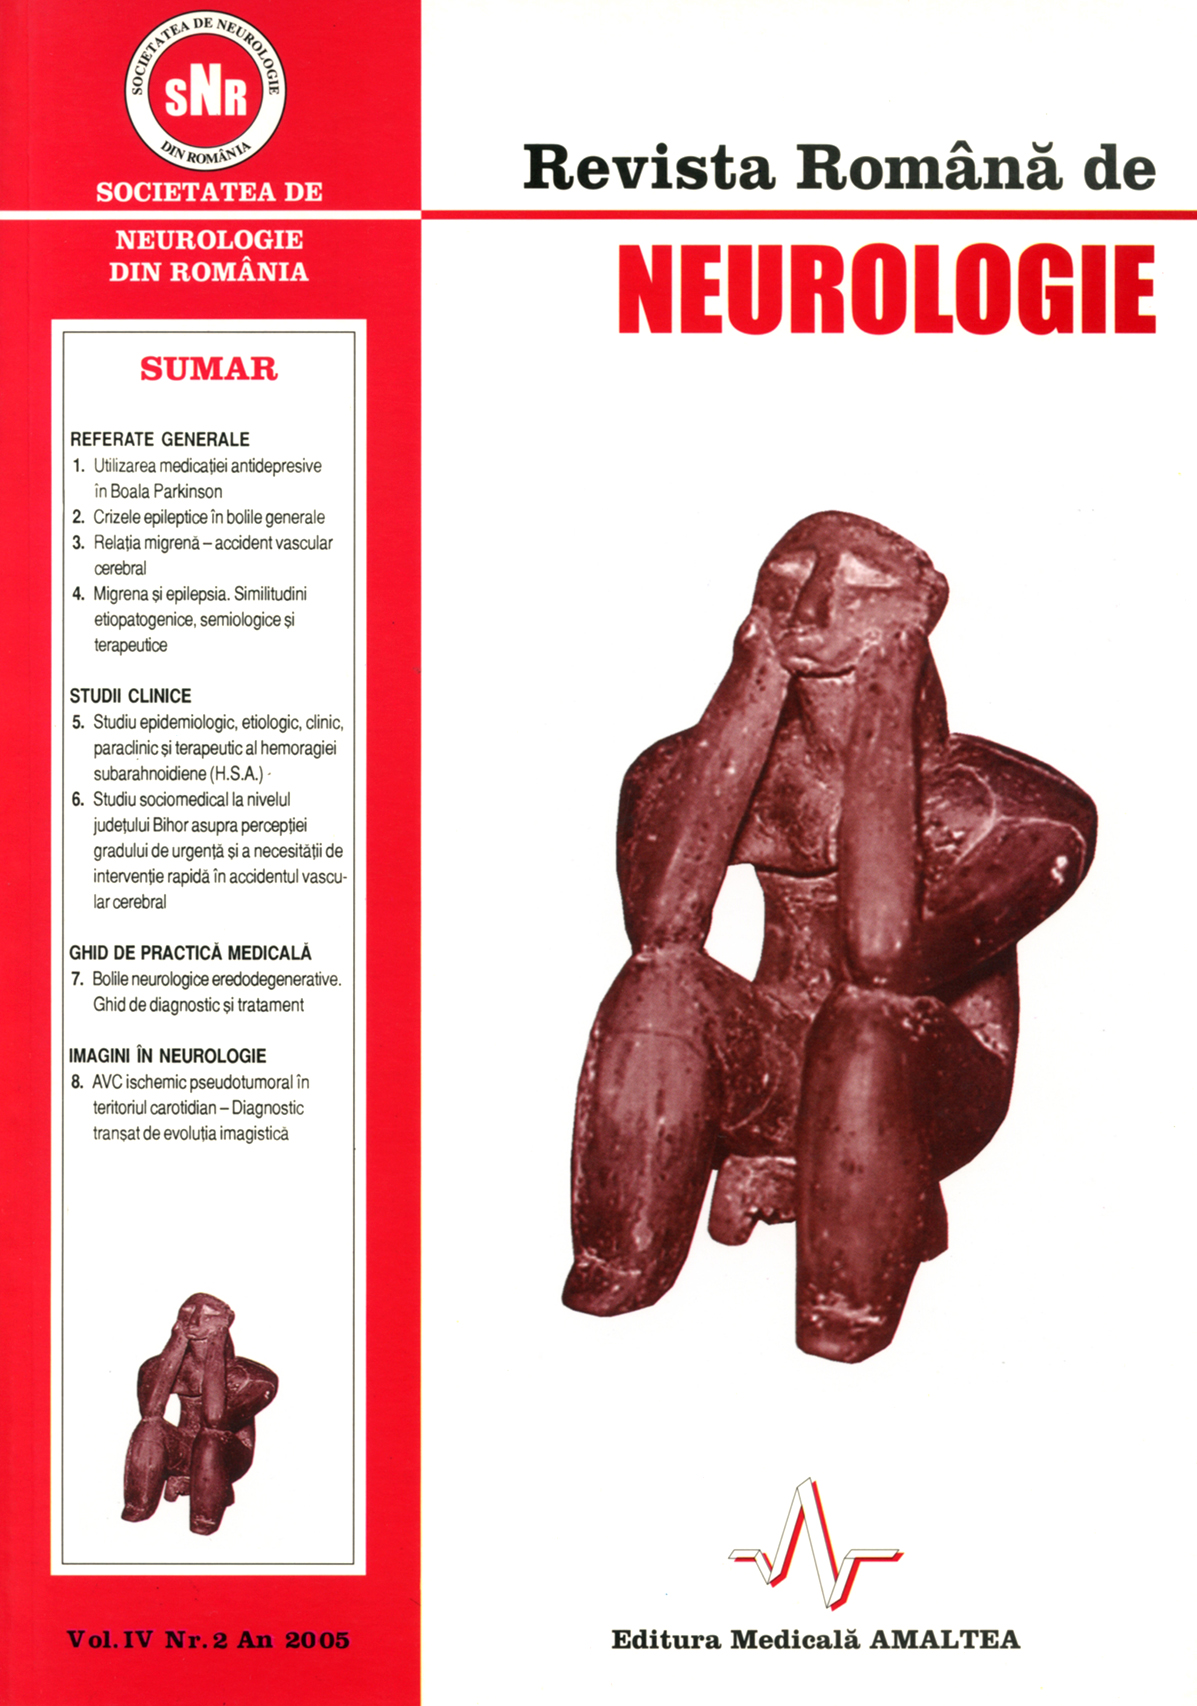 Romanian Journal of Neurology, Volume IV, No. 2, 2005